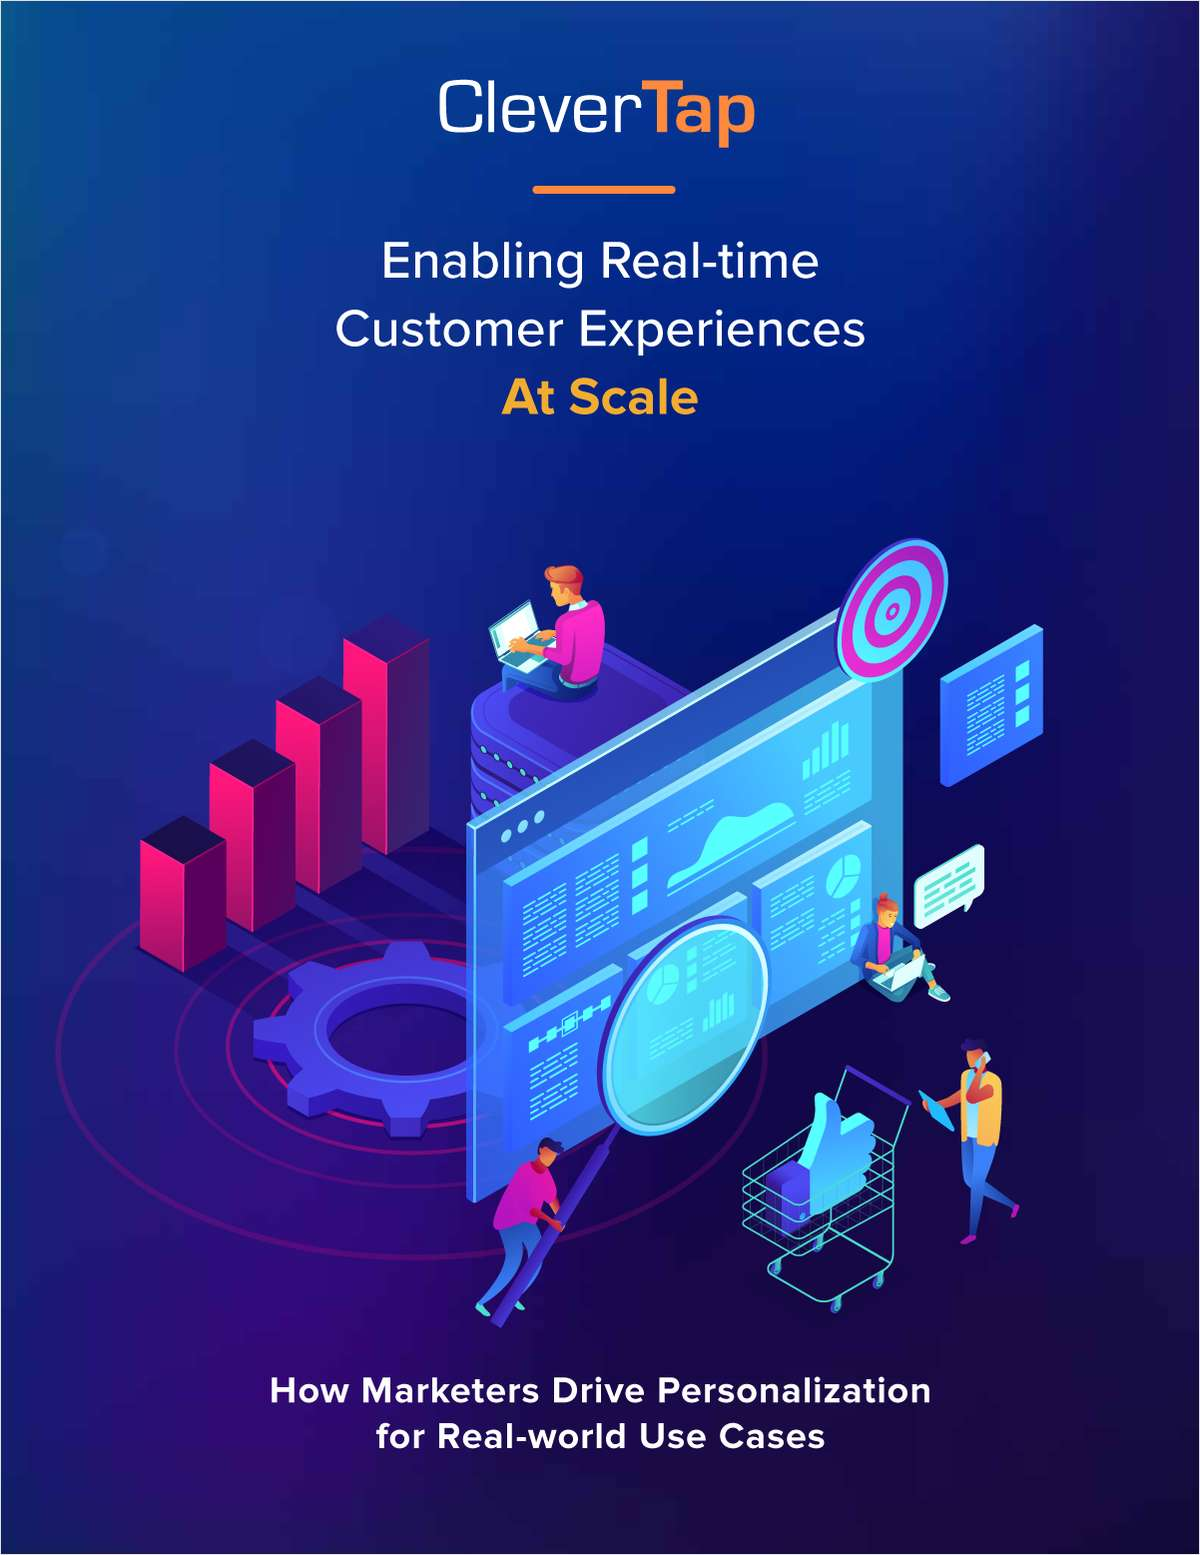 Enabling Real-time Customer Experiences at Scale